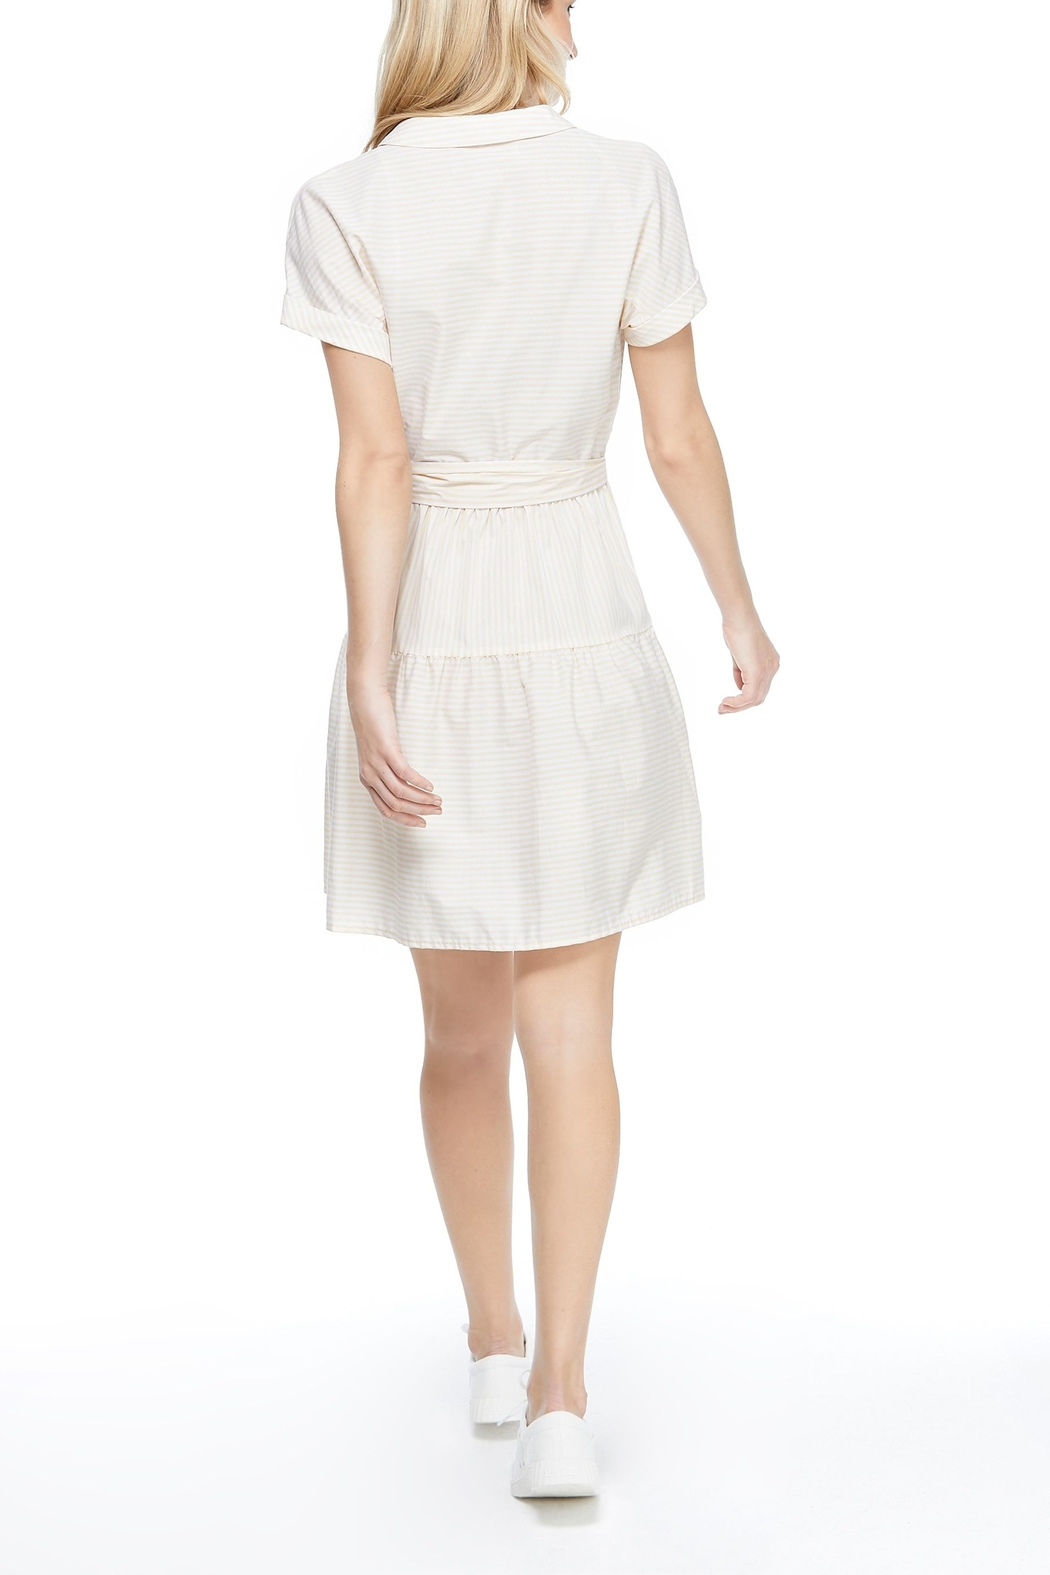 Gal Meets Glam Shirred Drindle Dress - Front Full Image